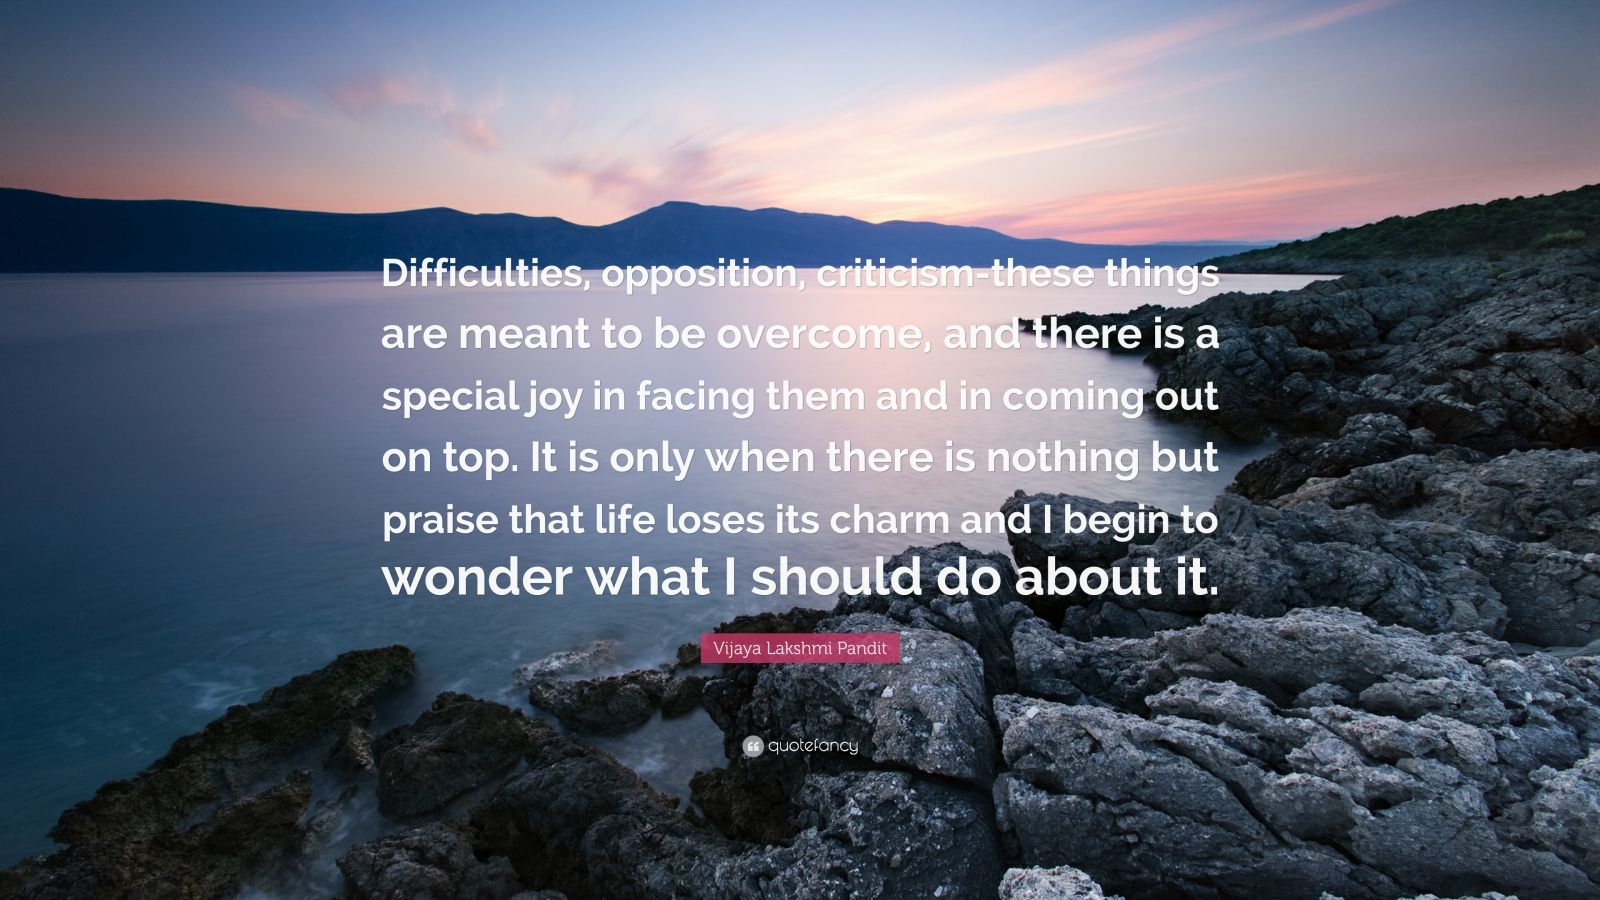 "Vijaya Lakshmi Pandit Quote: ""Difficulties, opposition, criticism-these things are meant to be overcome, and there is a special joy in facing them and in coming out on top. It is only when there is nothing but praise that life loses its charm and I begin to wonder what I should do about it."""